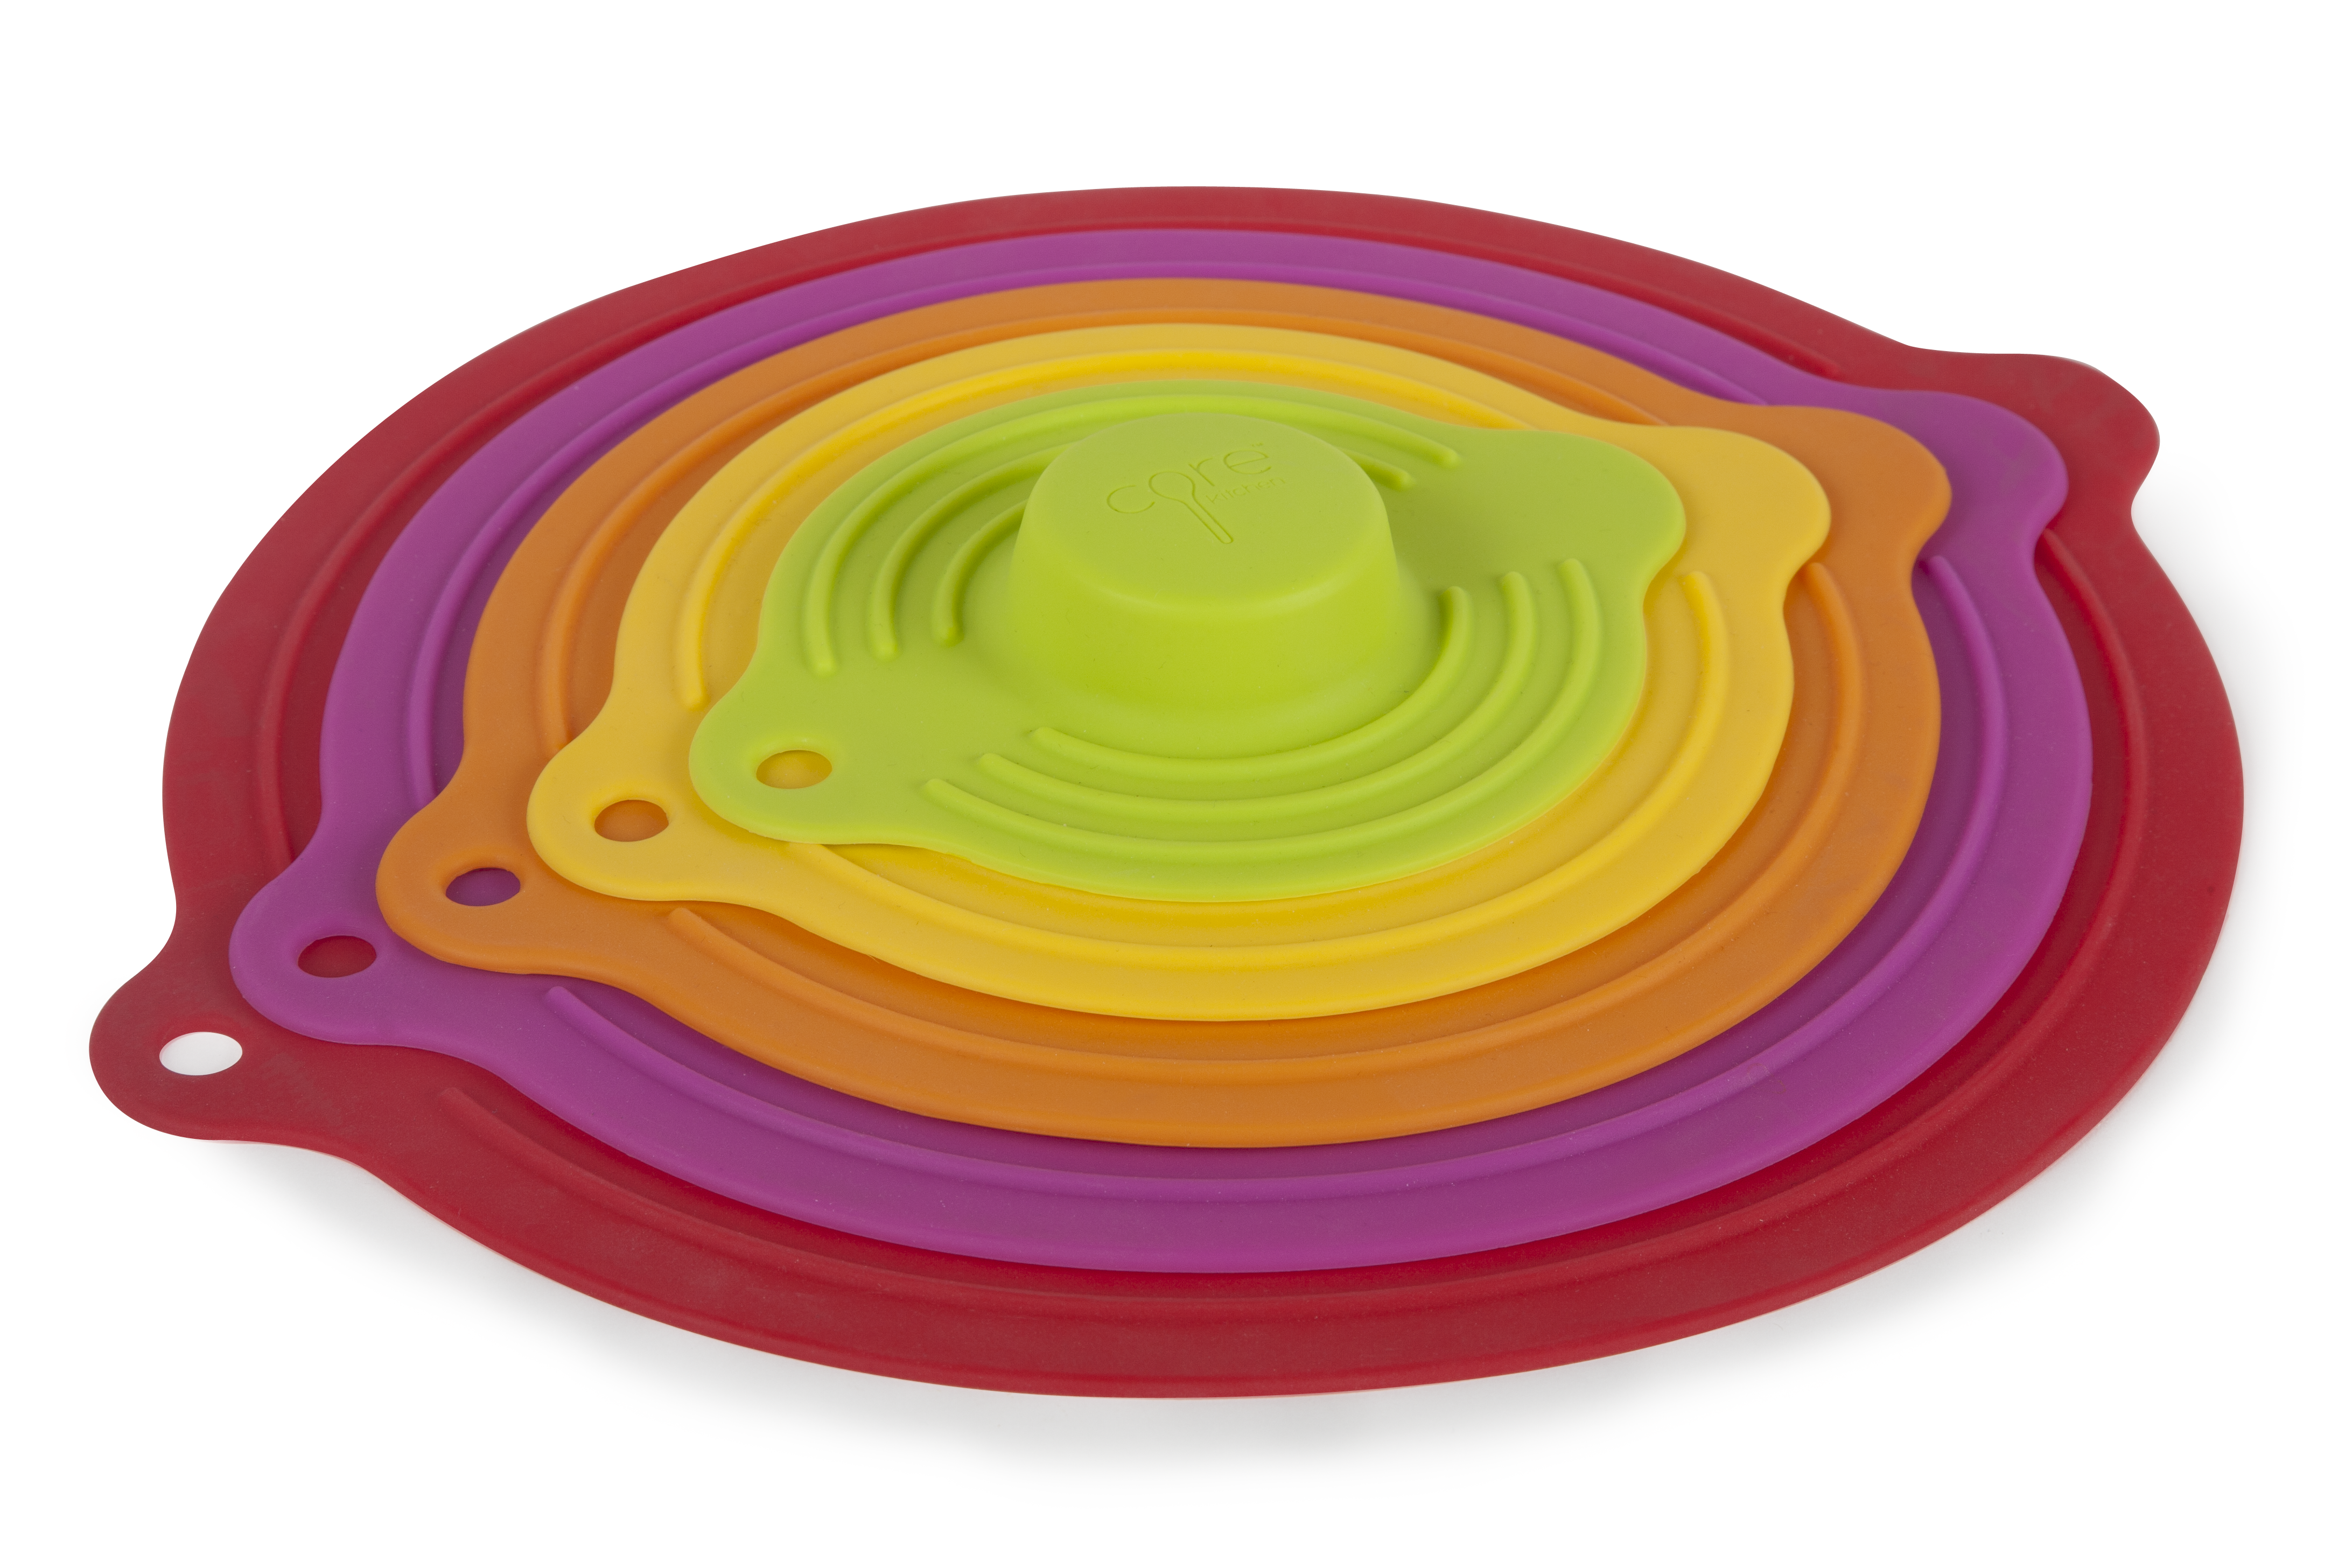 New Silicone Lids from Core Kitchen | Kitchenware News ...